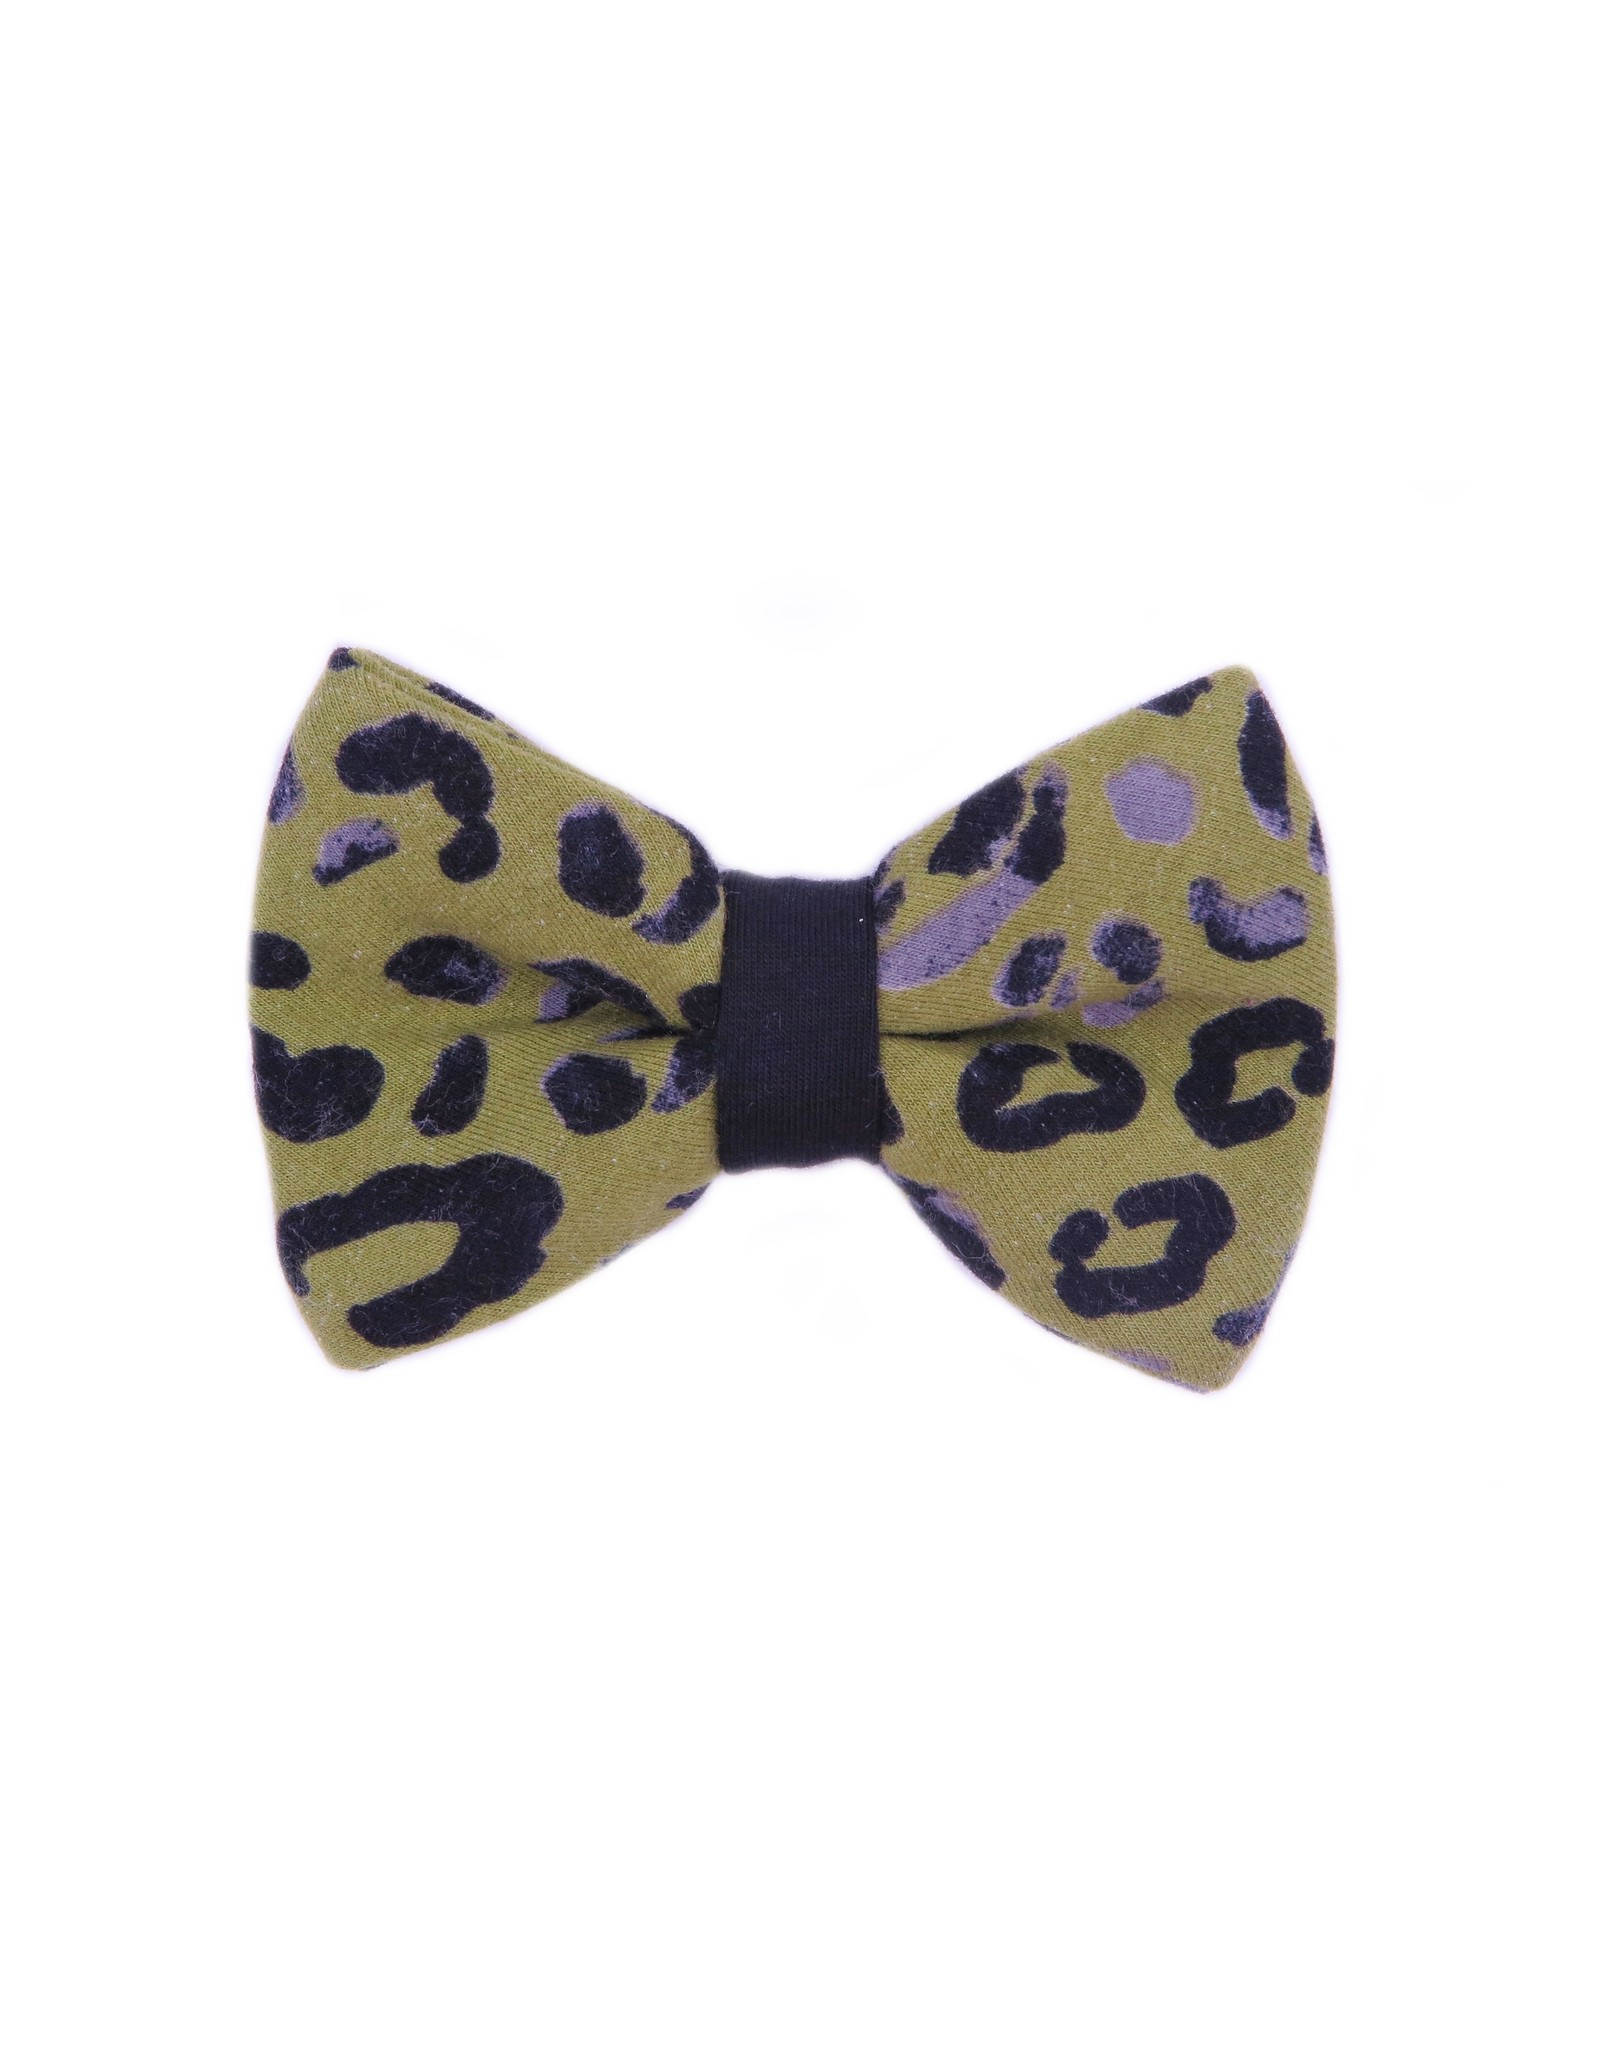 Bowtie panther